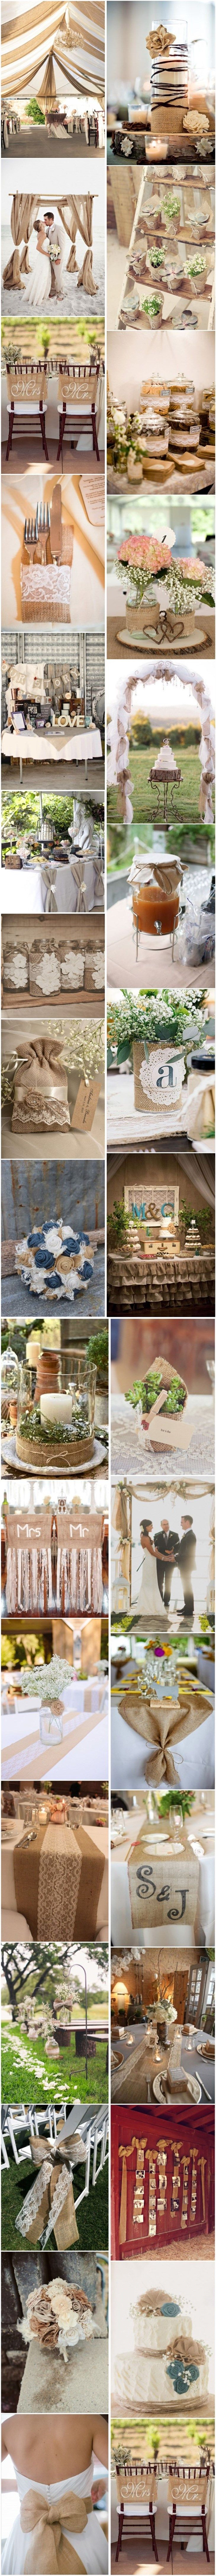 50+ Chic-Rustic Burlap Wedding Ideas, Rustic Wedding Ideas, See more: http://www.deerpearlflowers.com/50-chic-rustic-burlap-and-lace-wedding-ideas/